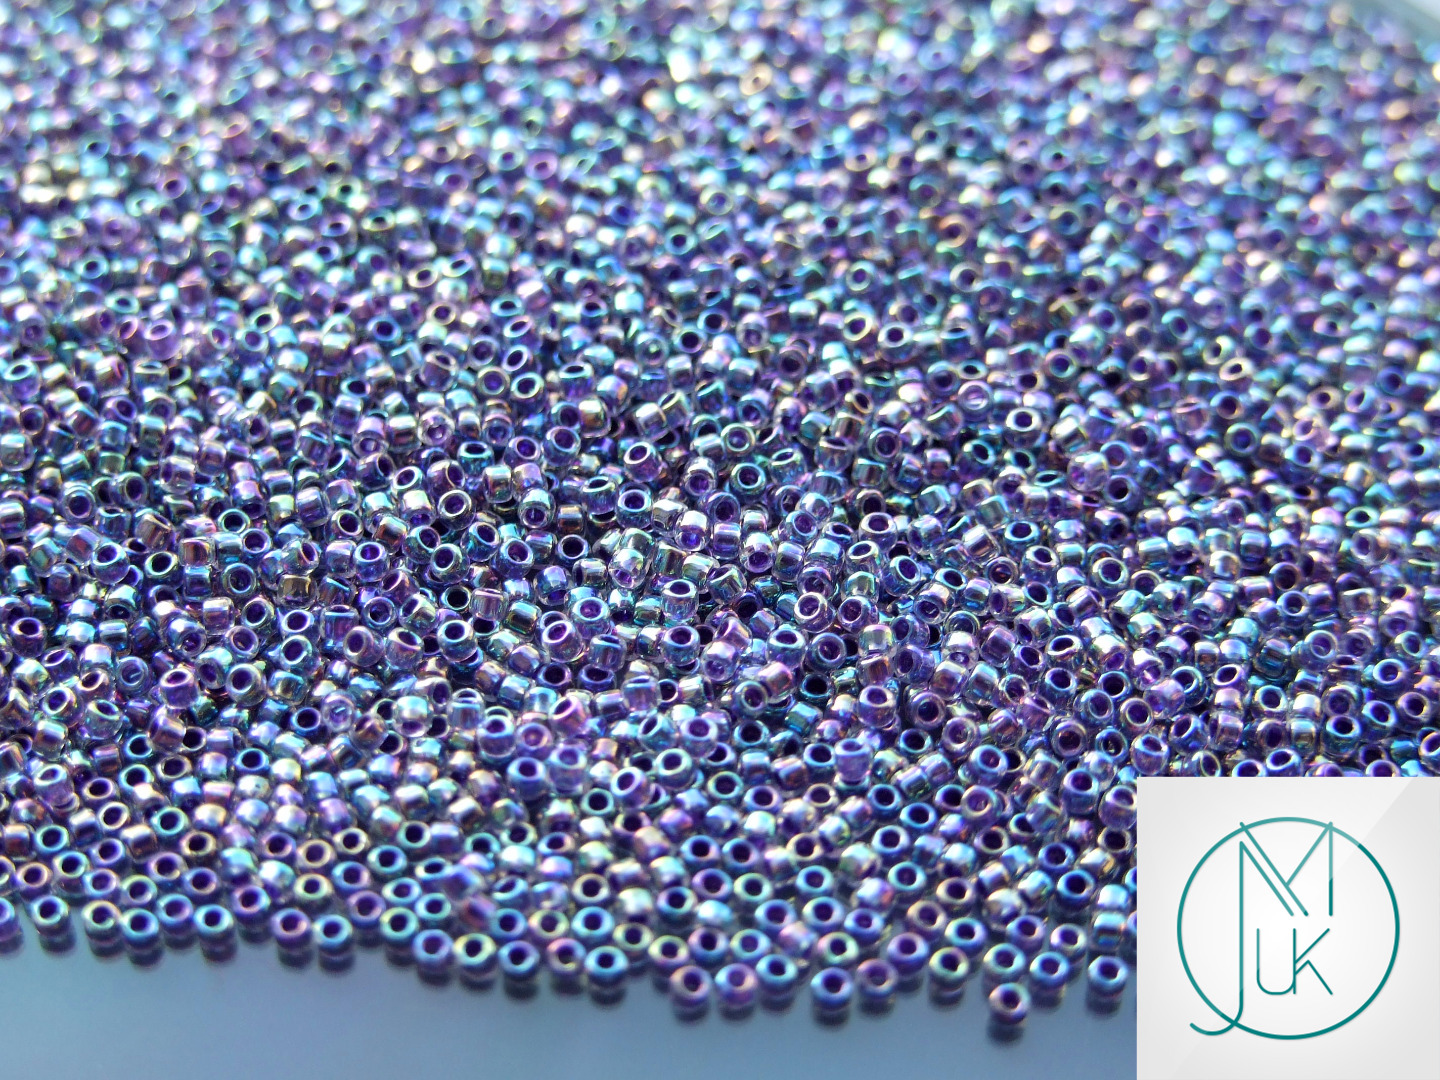 10g-Toho-Japanese-Seed-Beads-Size-15-0-1-5mm-185-Colors-To-Choose thumbnail 100